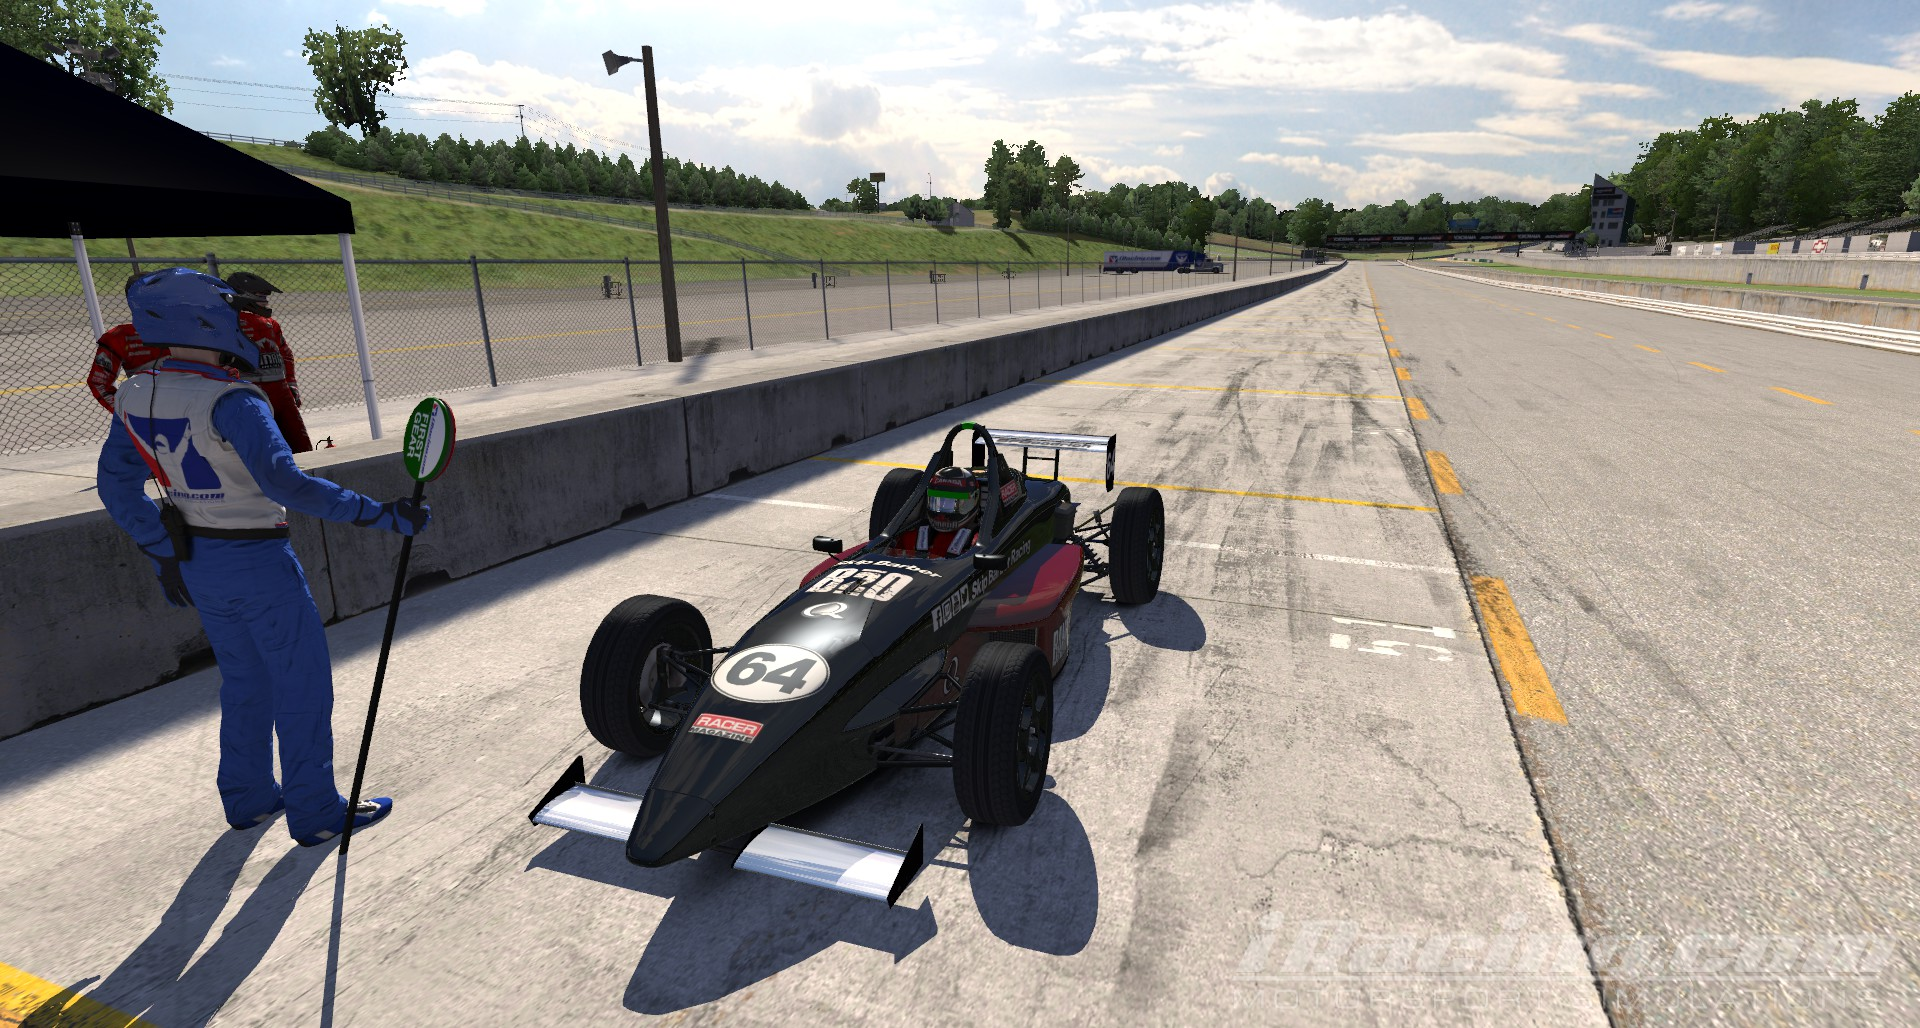 Preview of Band of Others Skip Barber by Jerad Sharp